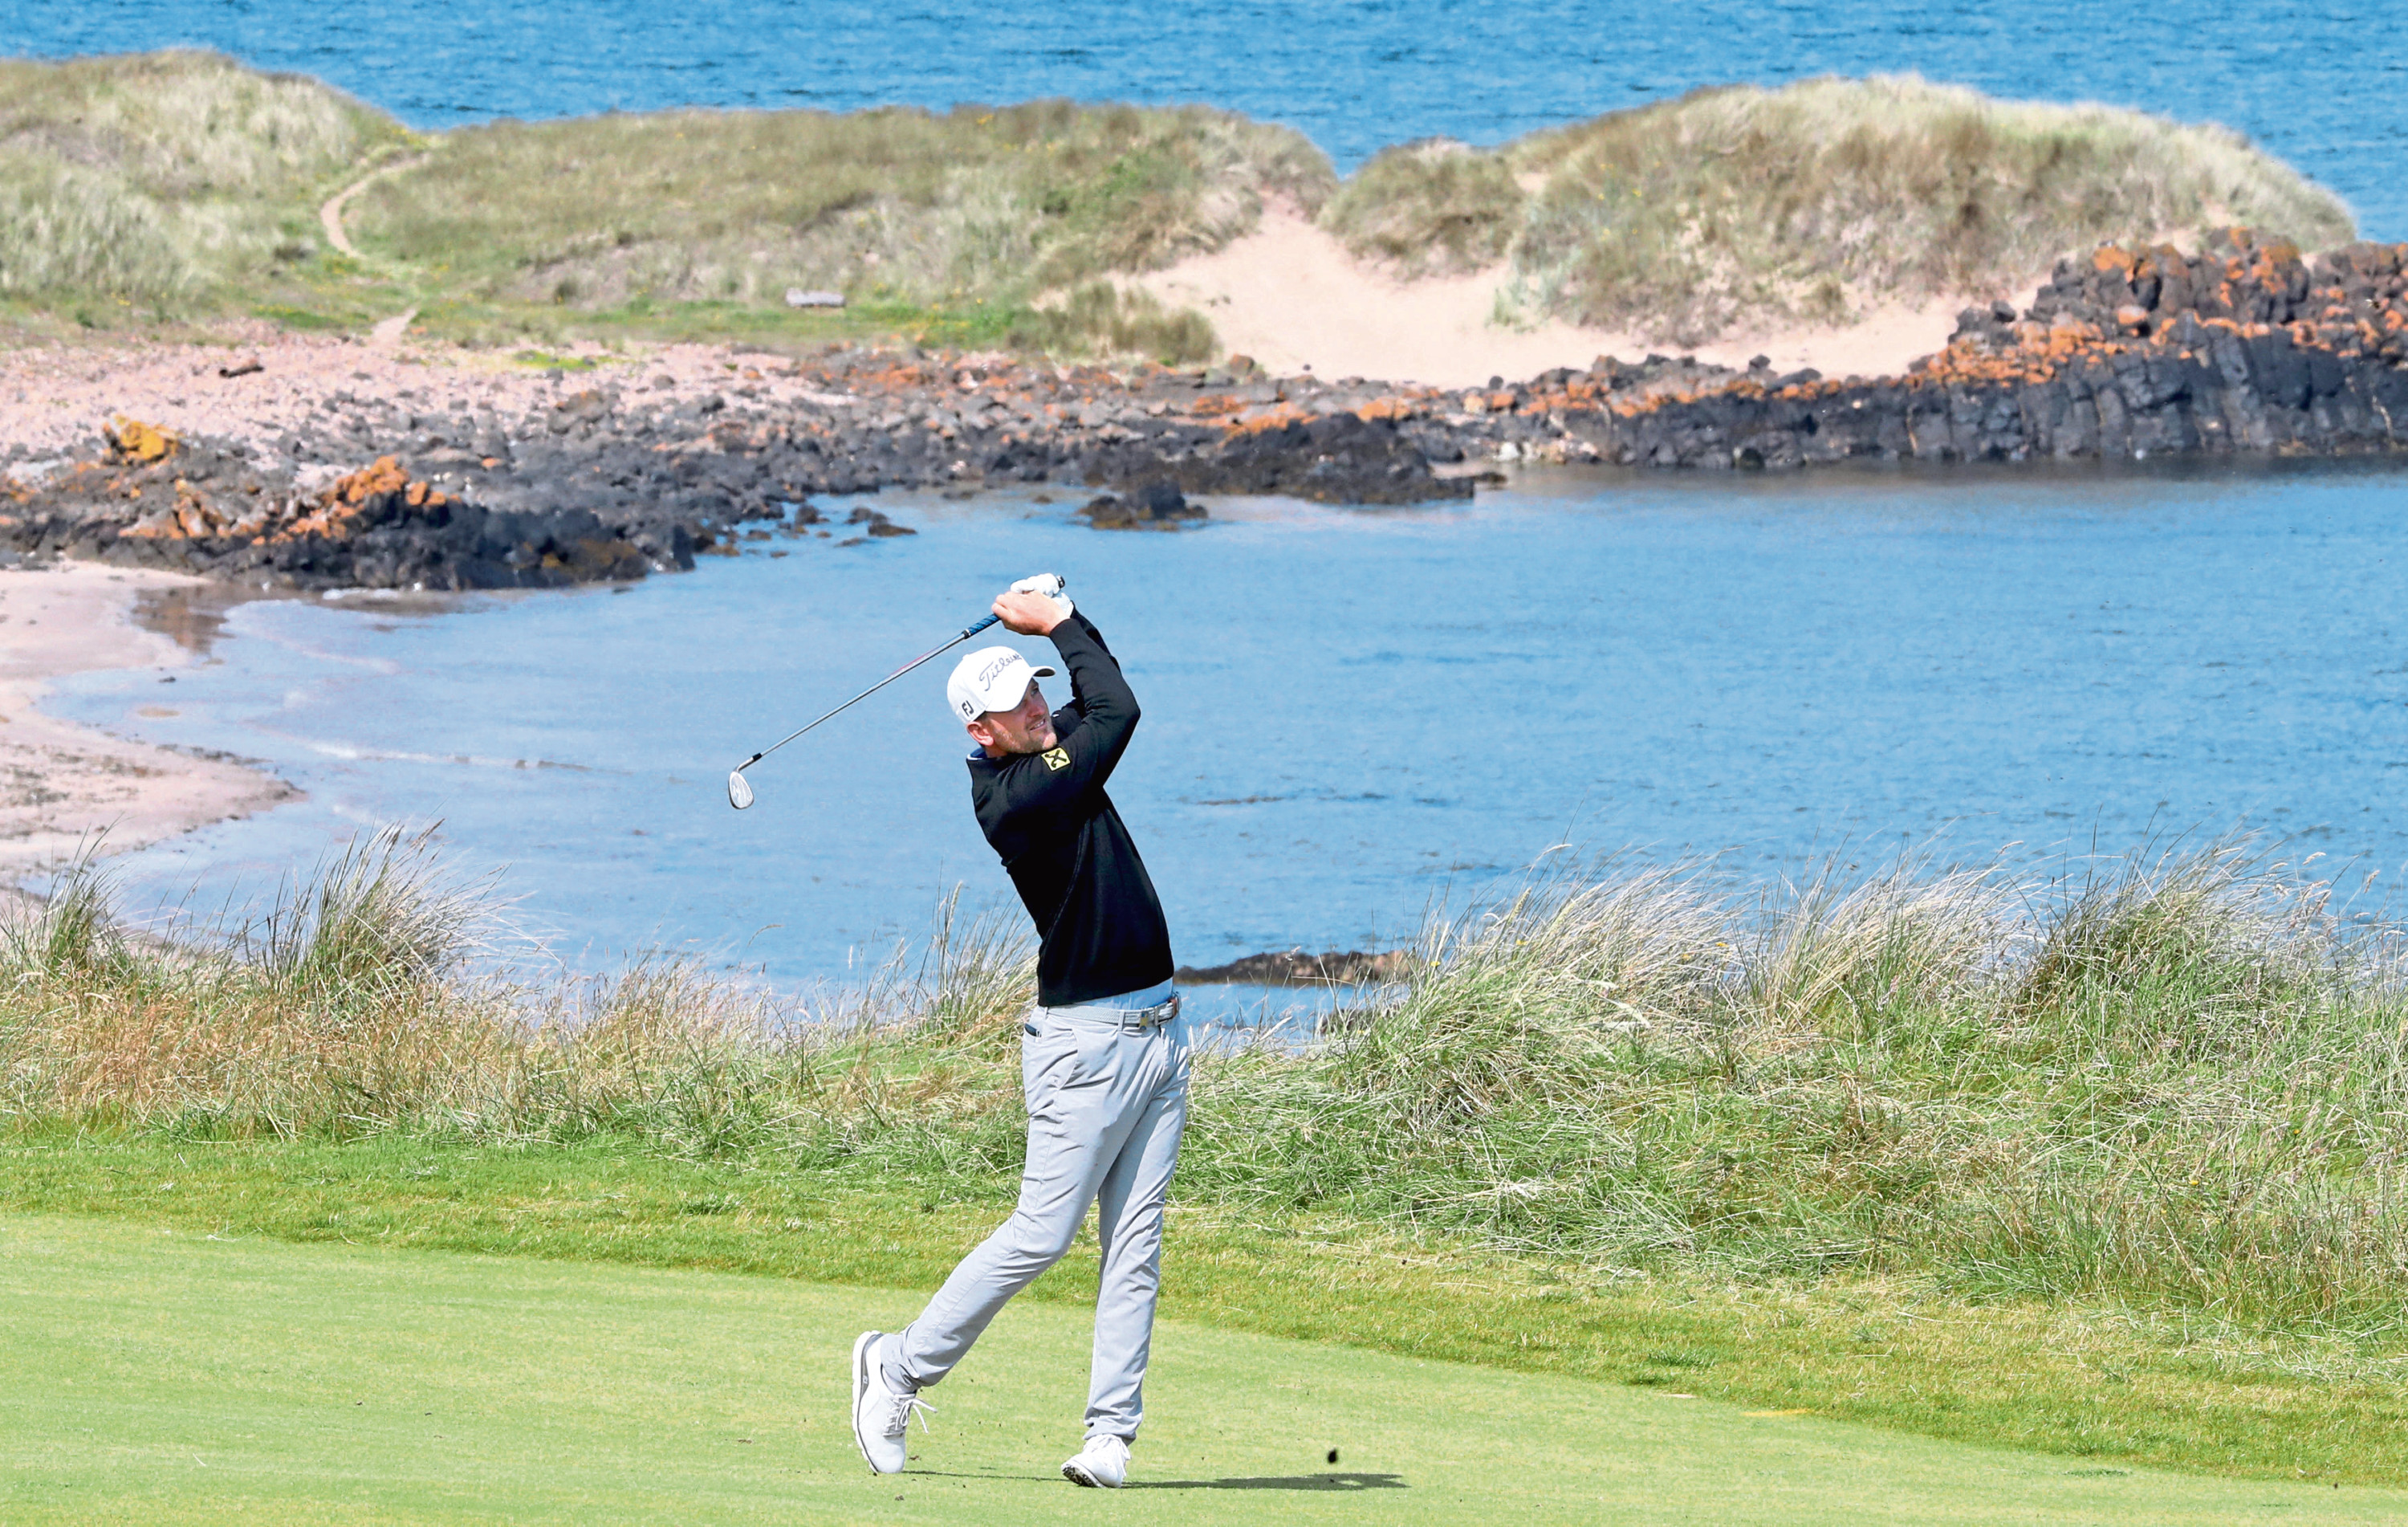 Austria's Bernd Wiesberger on the 4th hole during day two of the Aberdeen Standard Investments Scottish Open at The Renaissance Club, North Berwick.